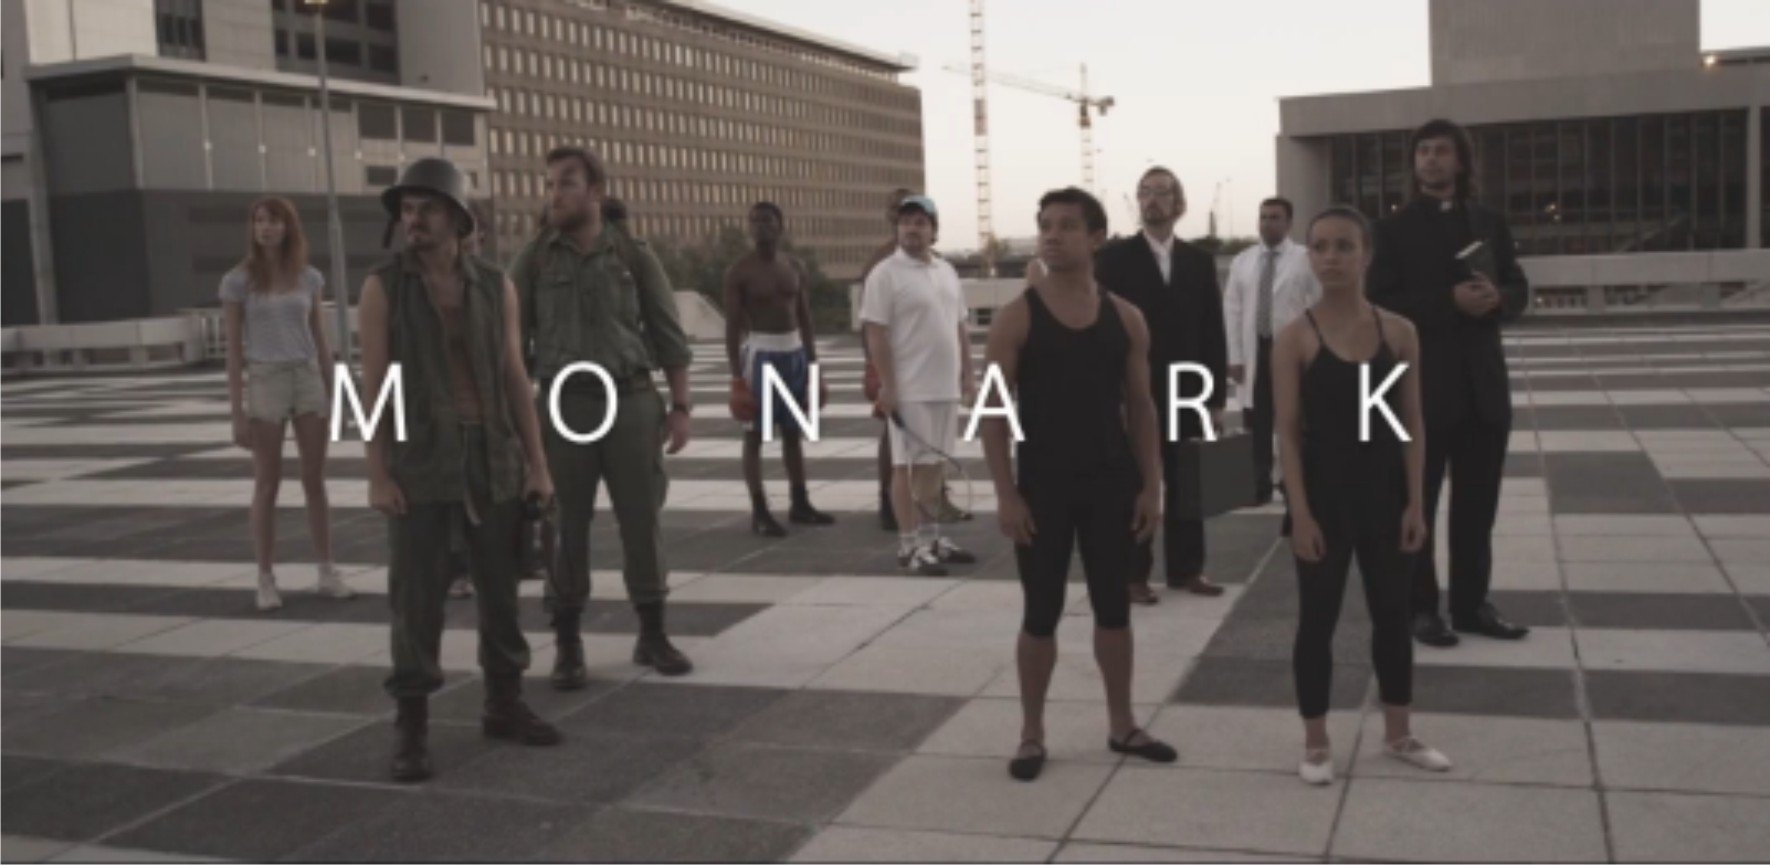 Monark release their Something music video to the South African music scene